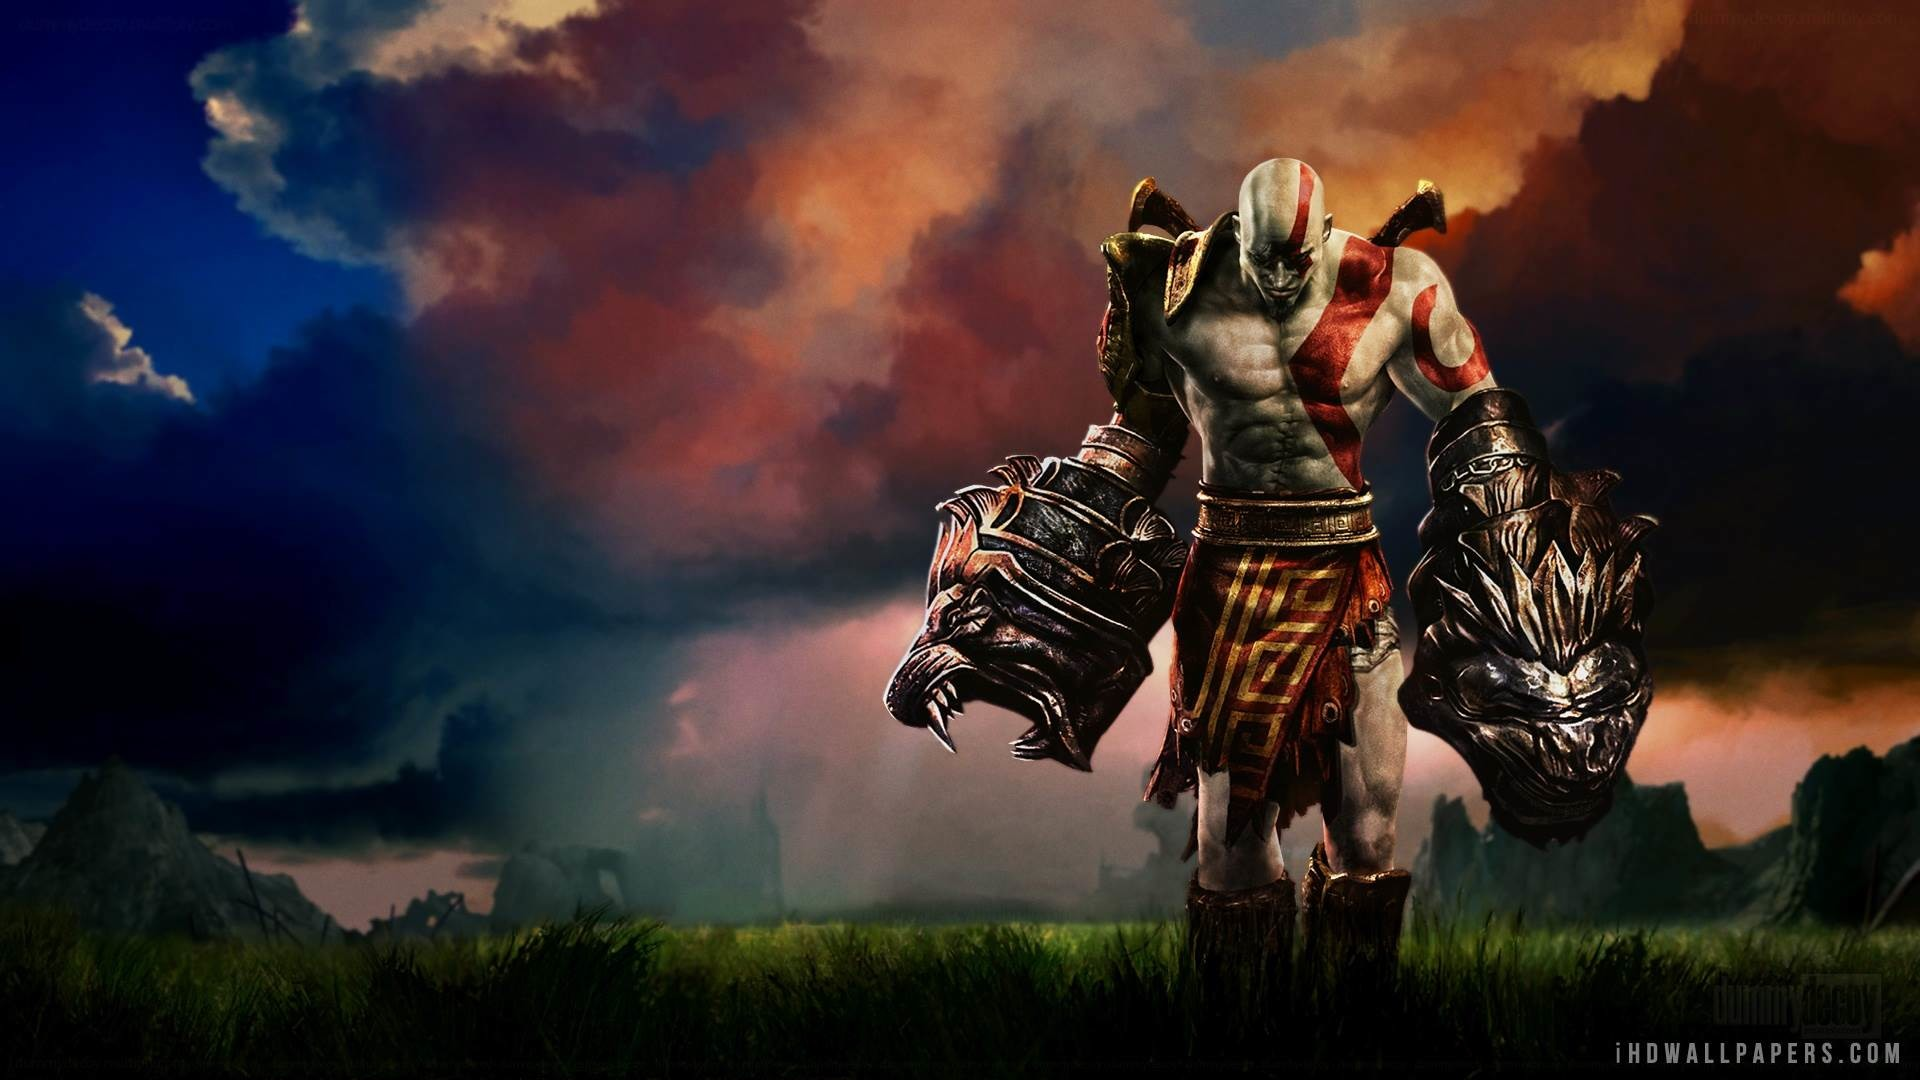 Kratos Wallpapers HD Wallpaper 1920×1080 Kratos HD Wallpapers | Adorable  Wallpapers